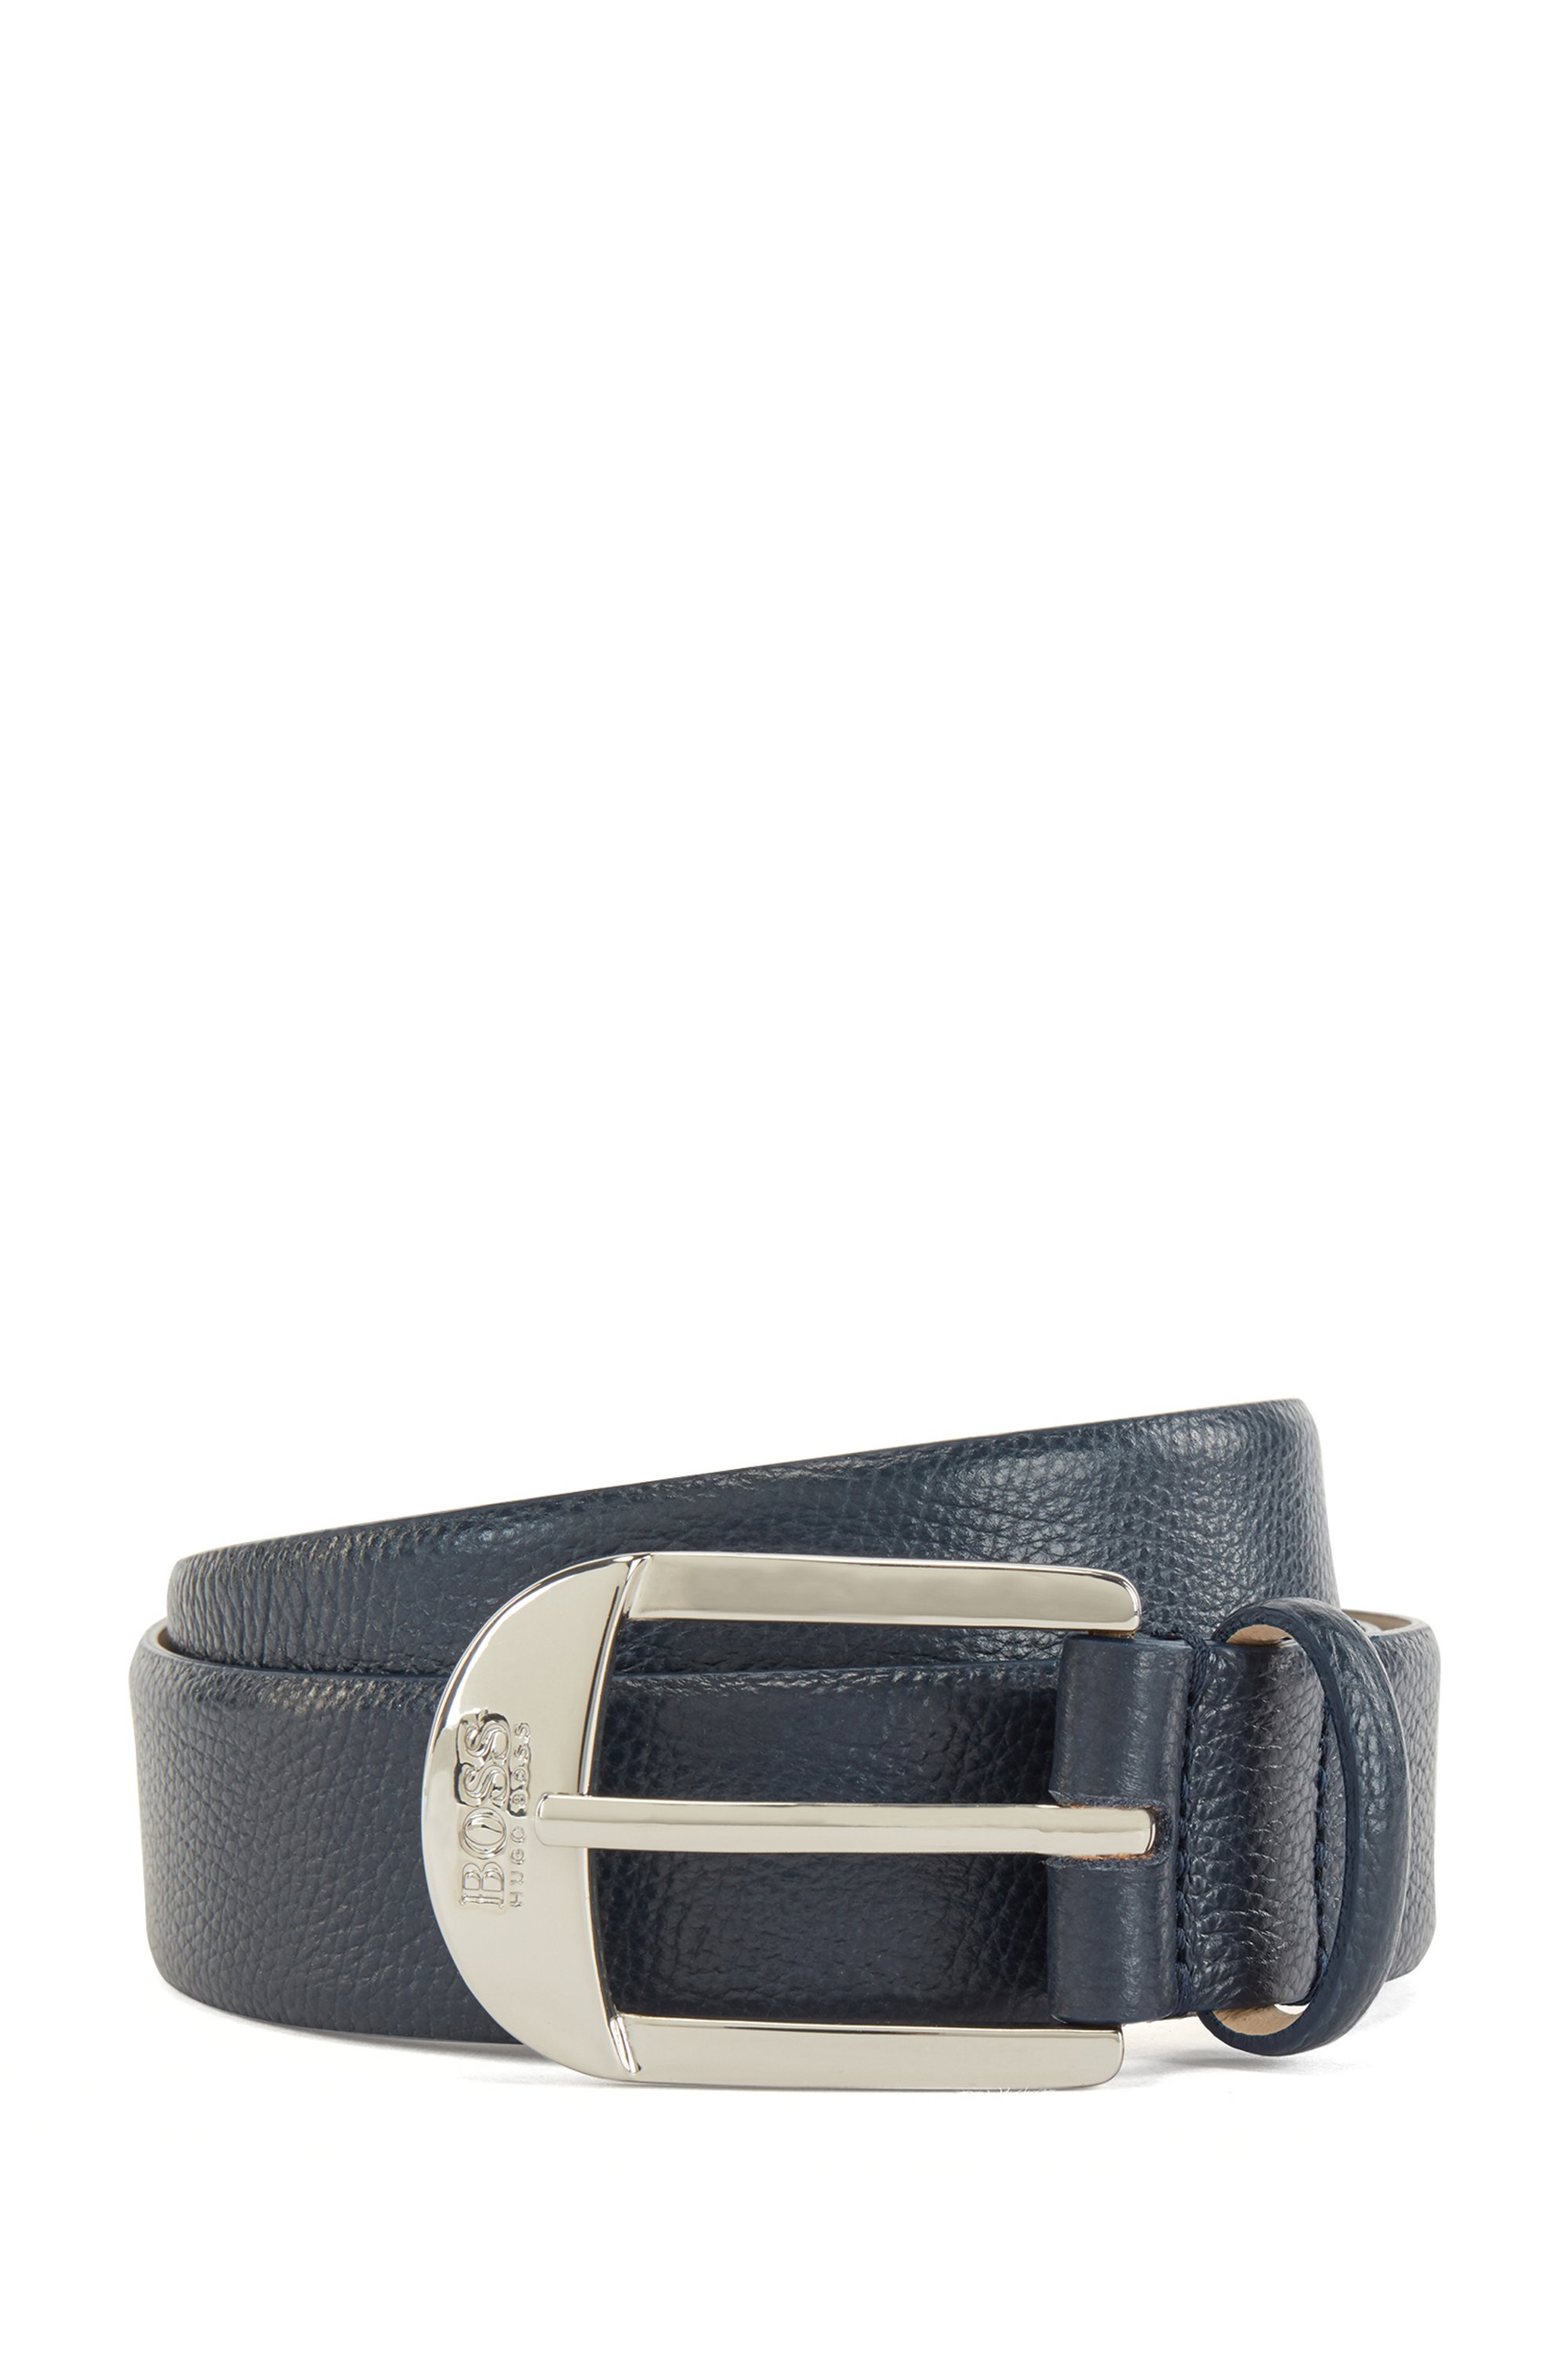 Pin-buckle belt in grained Italian leather, Dark Blue